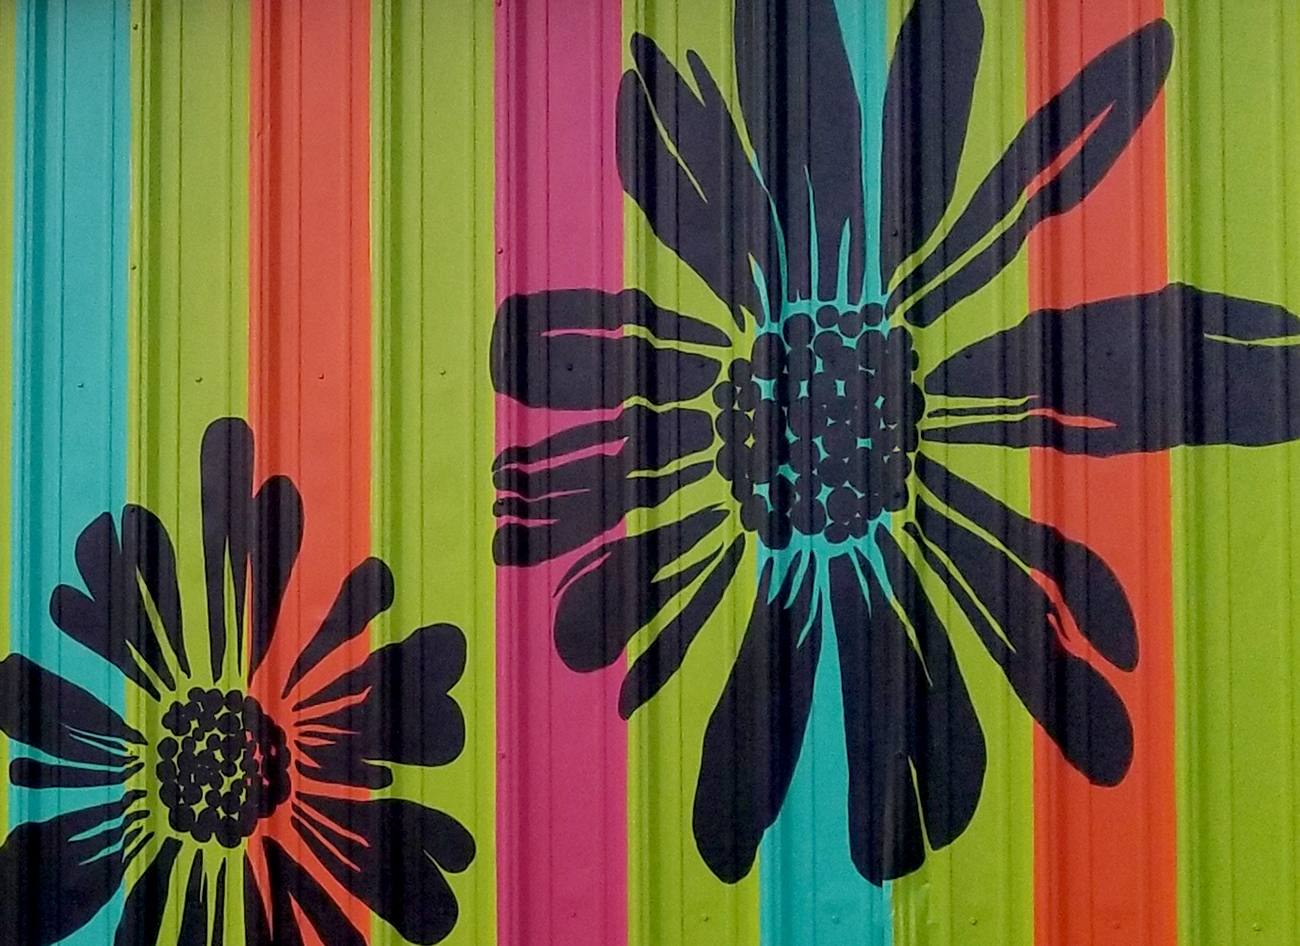 You are currently viewing Mural In Progress | House of Flowers, Shawnee